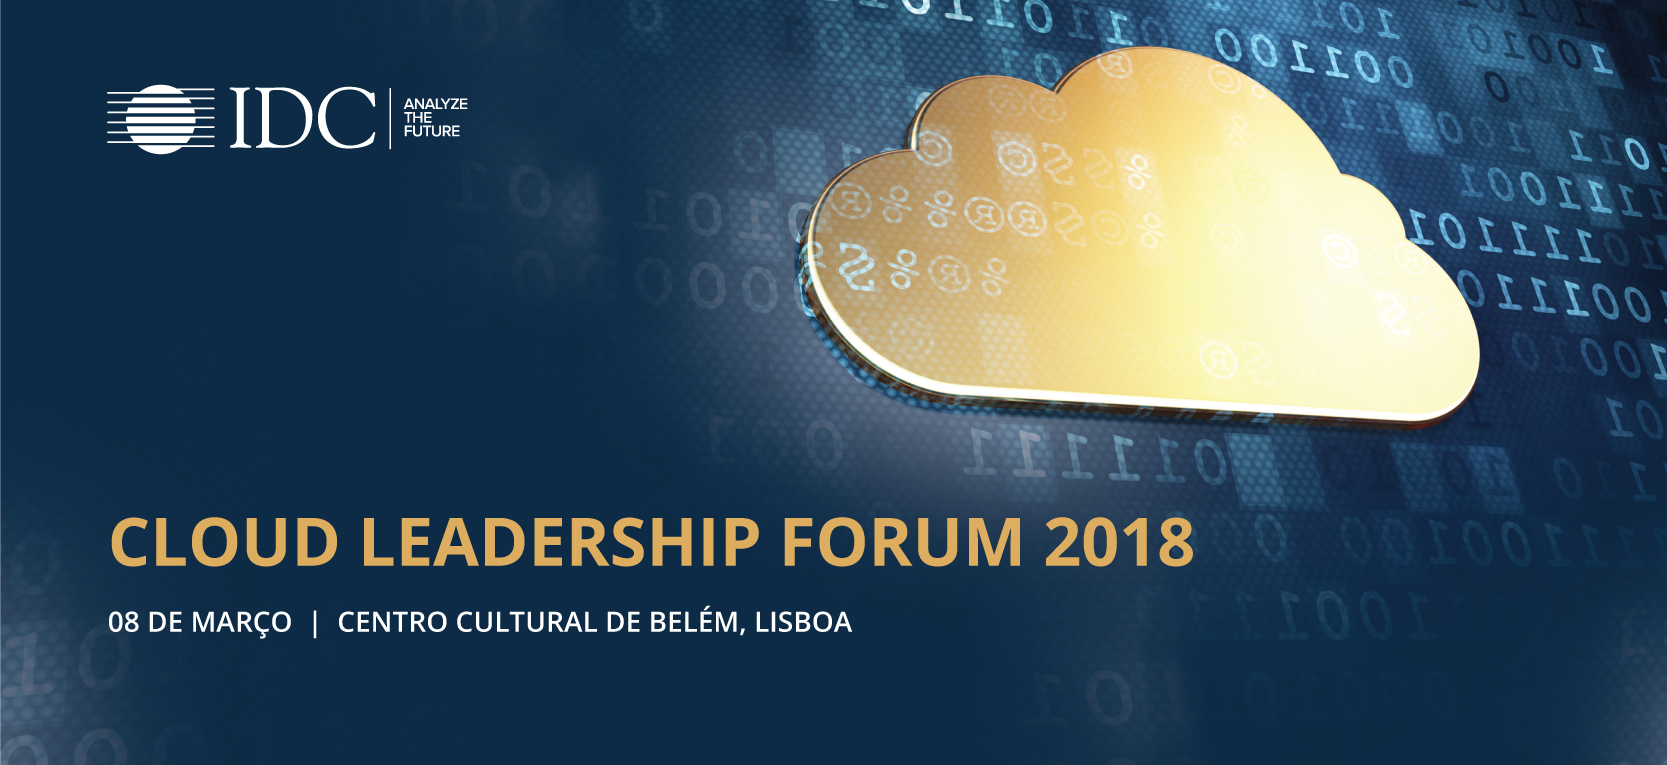 IDC CLOUD FORUM 2018